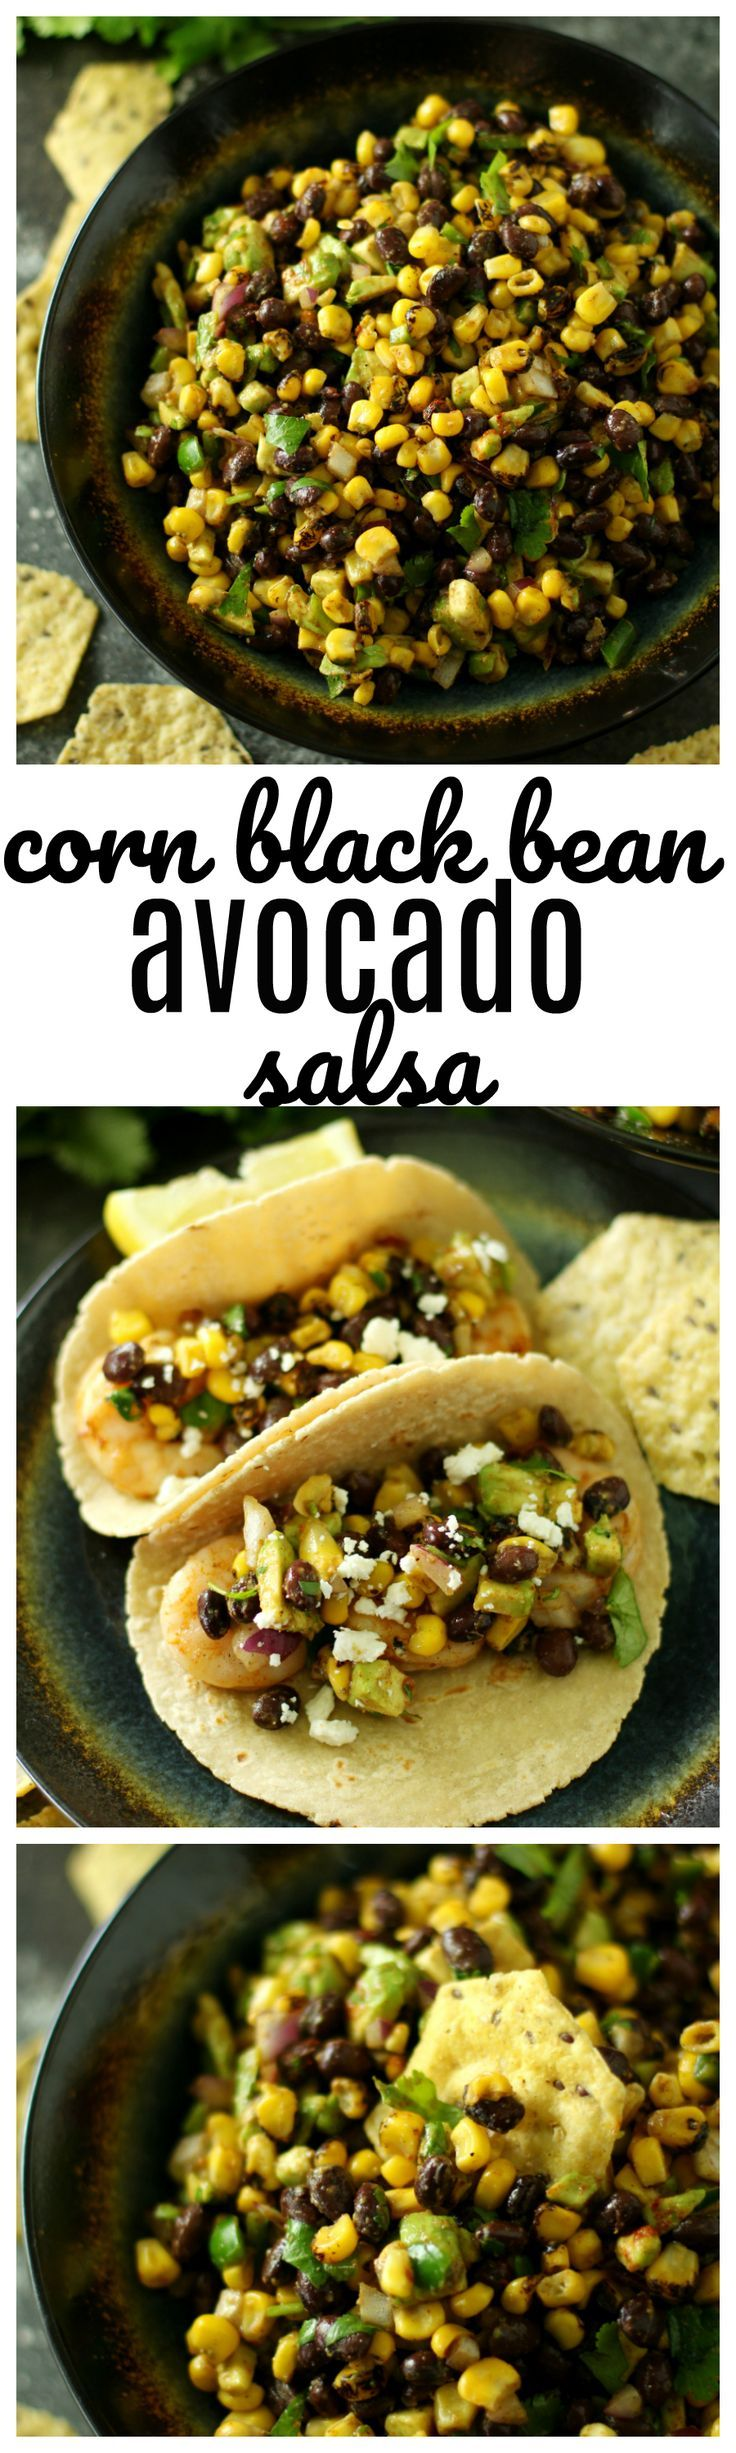 Happy Memorial Day!! You're definitely going to want to bring this new Corn Black Bean Avocado Salsa to the cookout! It works great as a dip, but also as a topping for grilled steak, chicken or fish. W/ Frontier Co-op seasonings #CookWithPurpose #GrillTheGoodness #ad